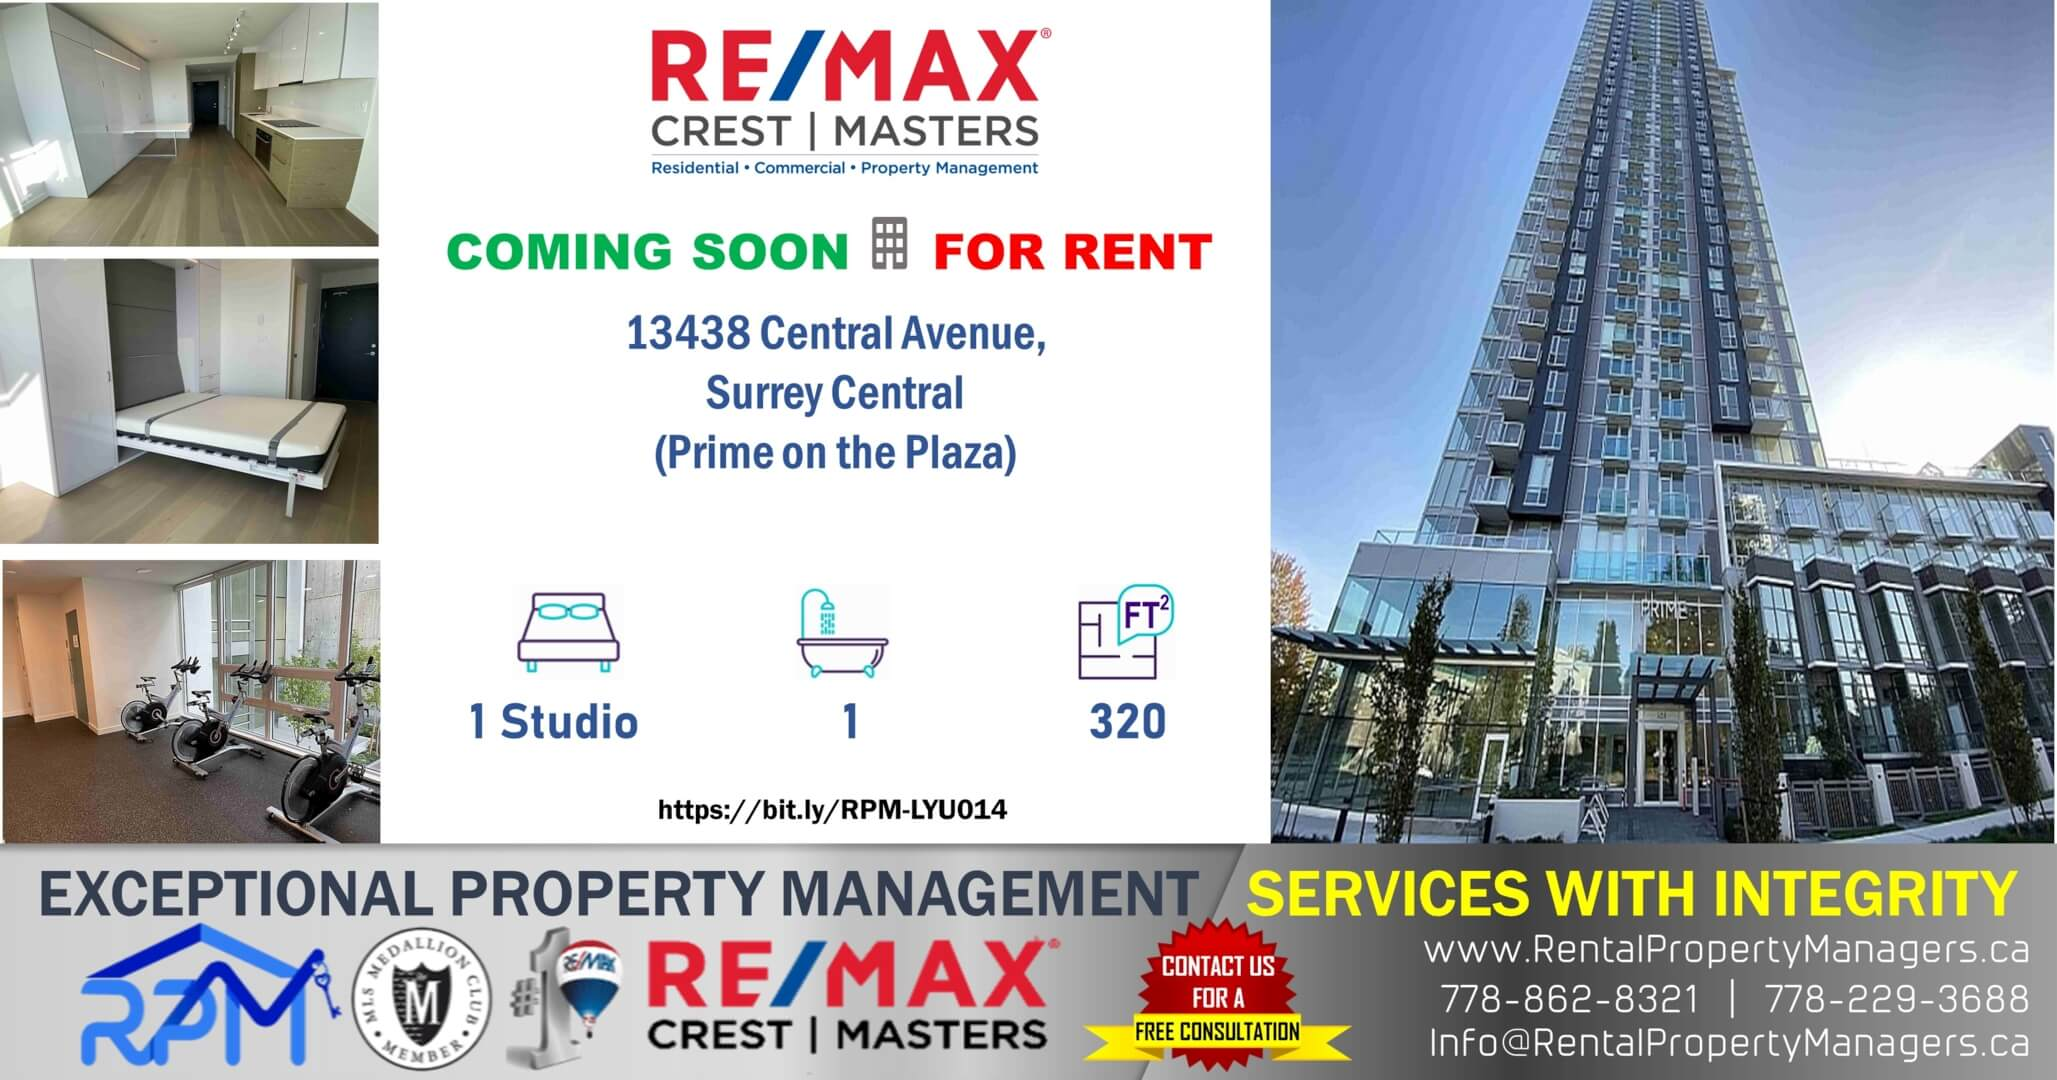 [COMING SOON ] FOR RENT 13438 Central Avenue, Surrey Central, 1 Studio Bedroom+1Bath (320Ft)